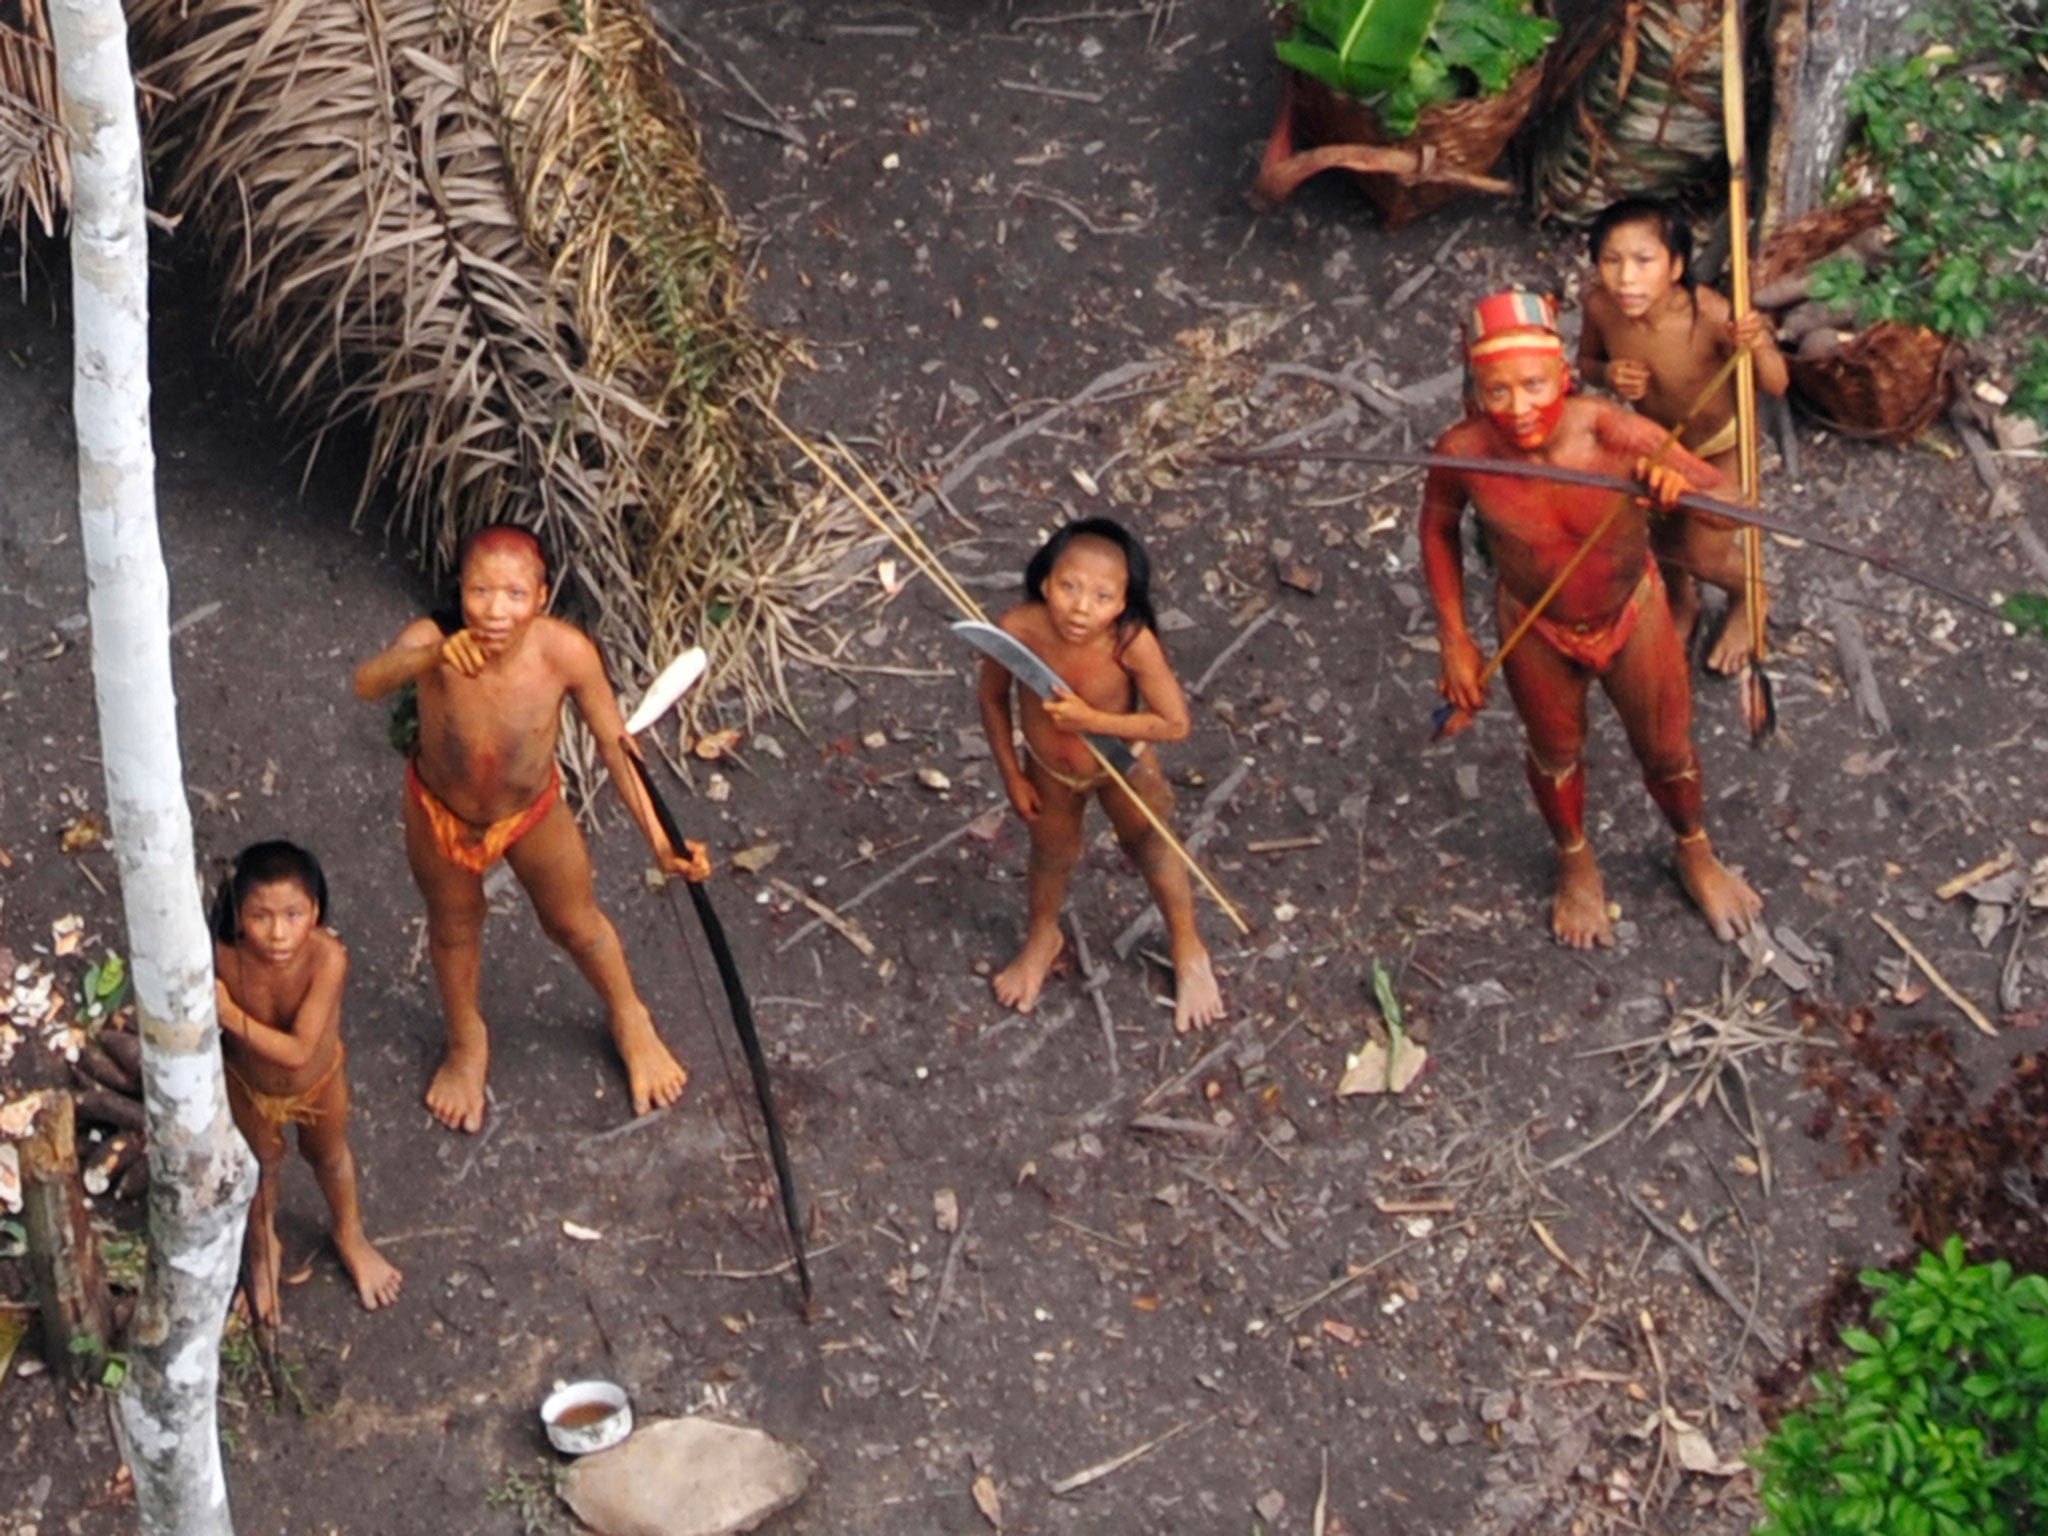 Forced contact with Amazon people would be 'genocide', tribe warns ...